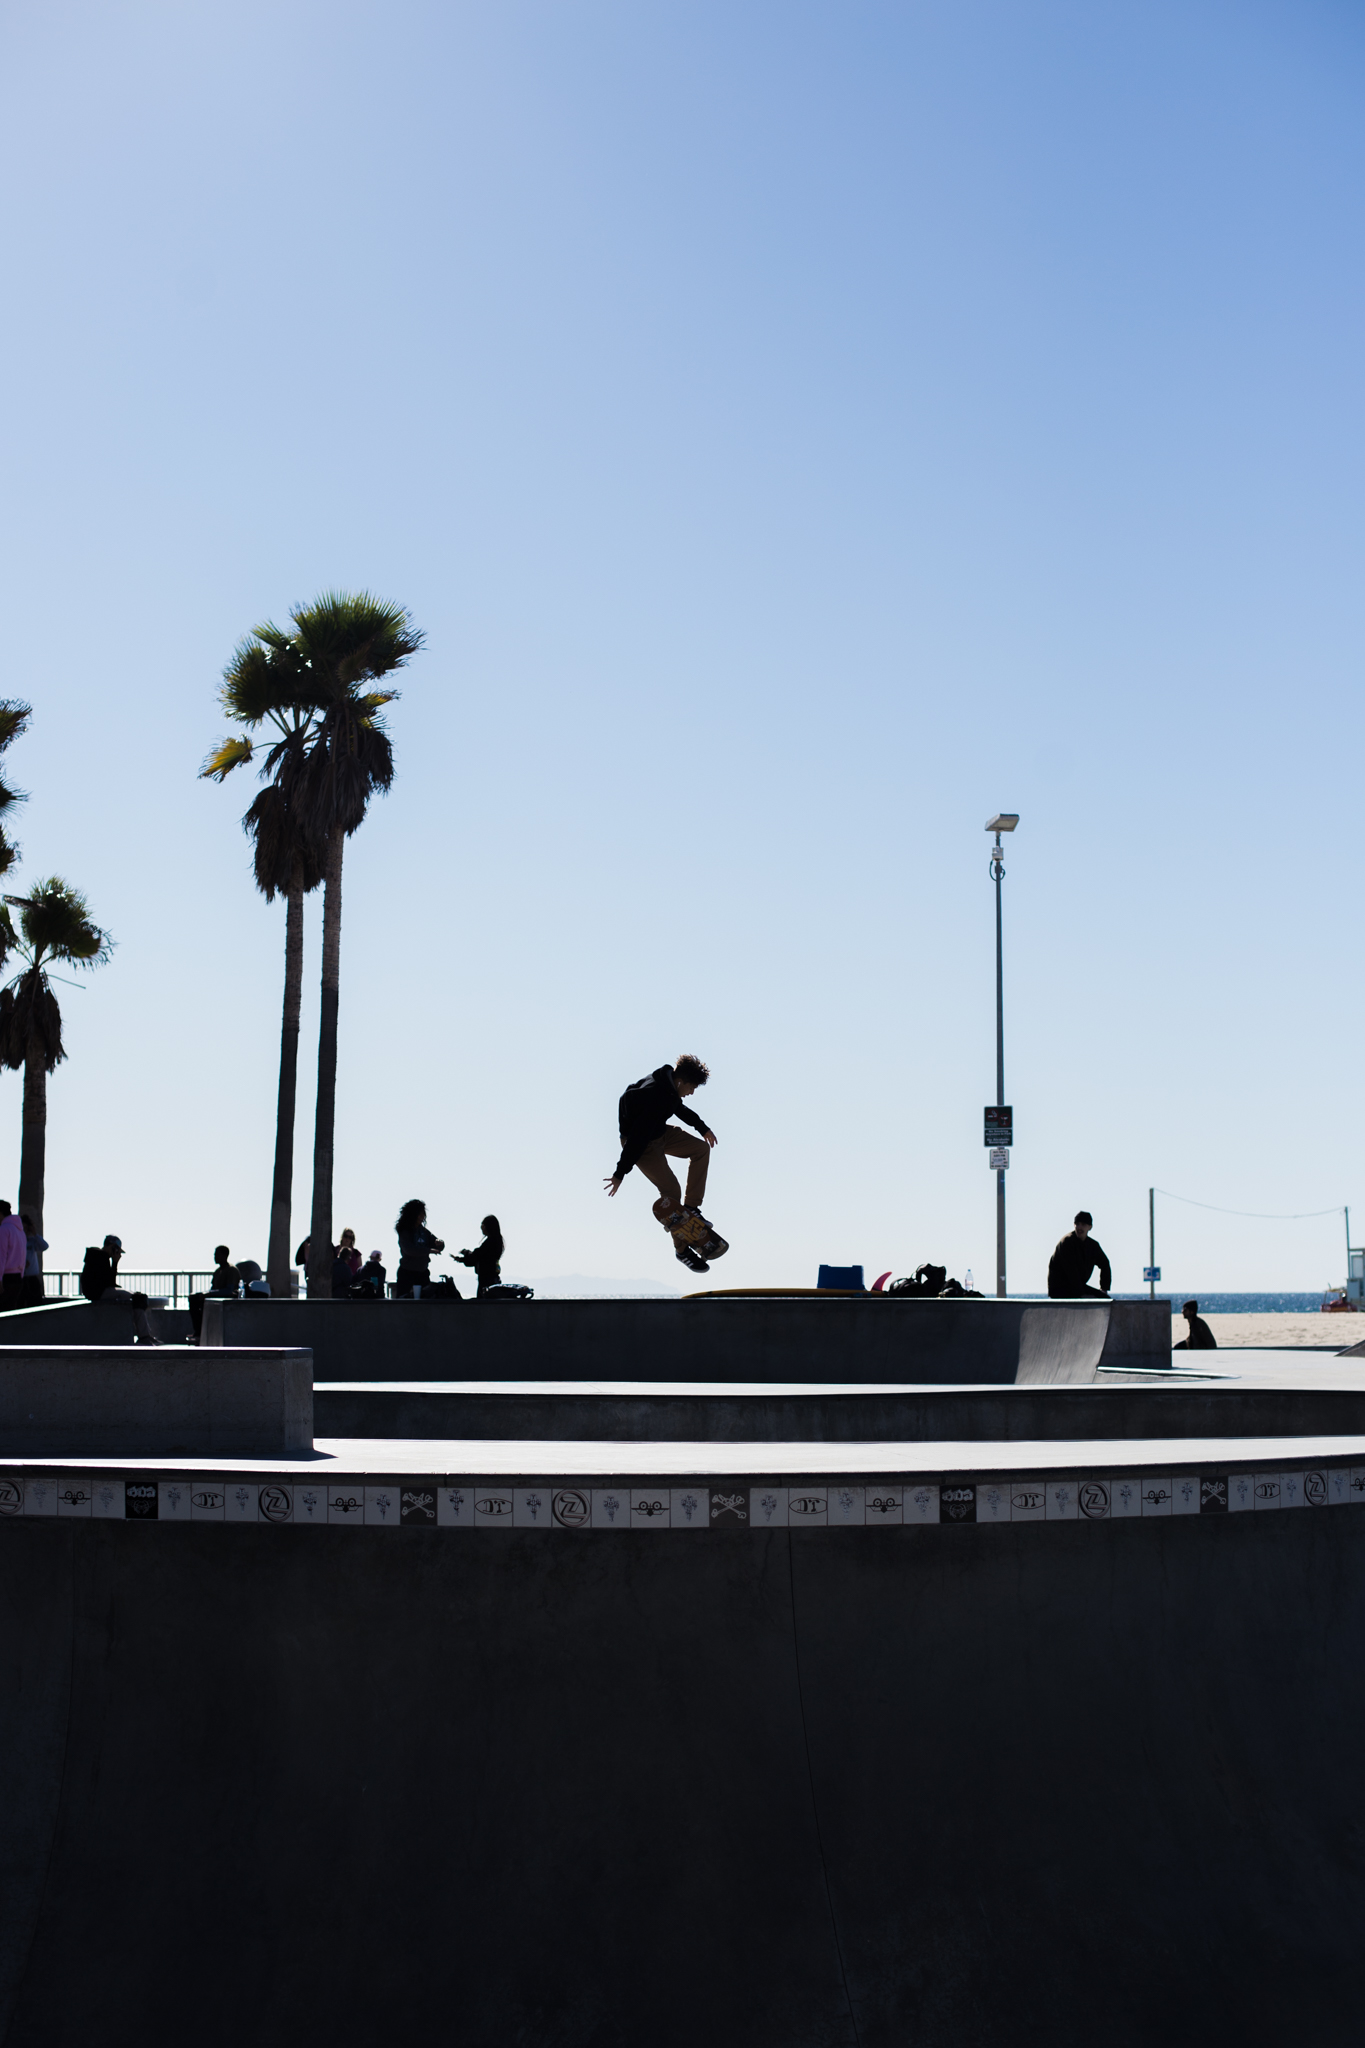 My morning walk down the Venice Beach Boardwalk. I stopped at the skate park to watch the skaters and got this cool shot